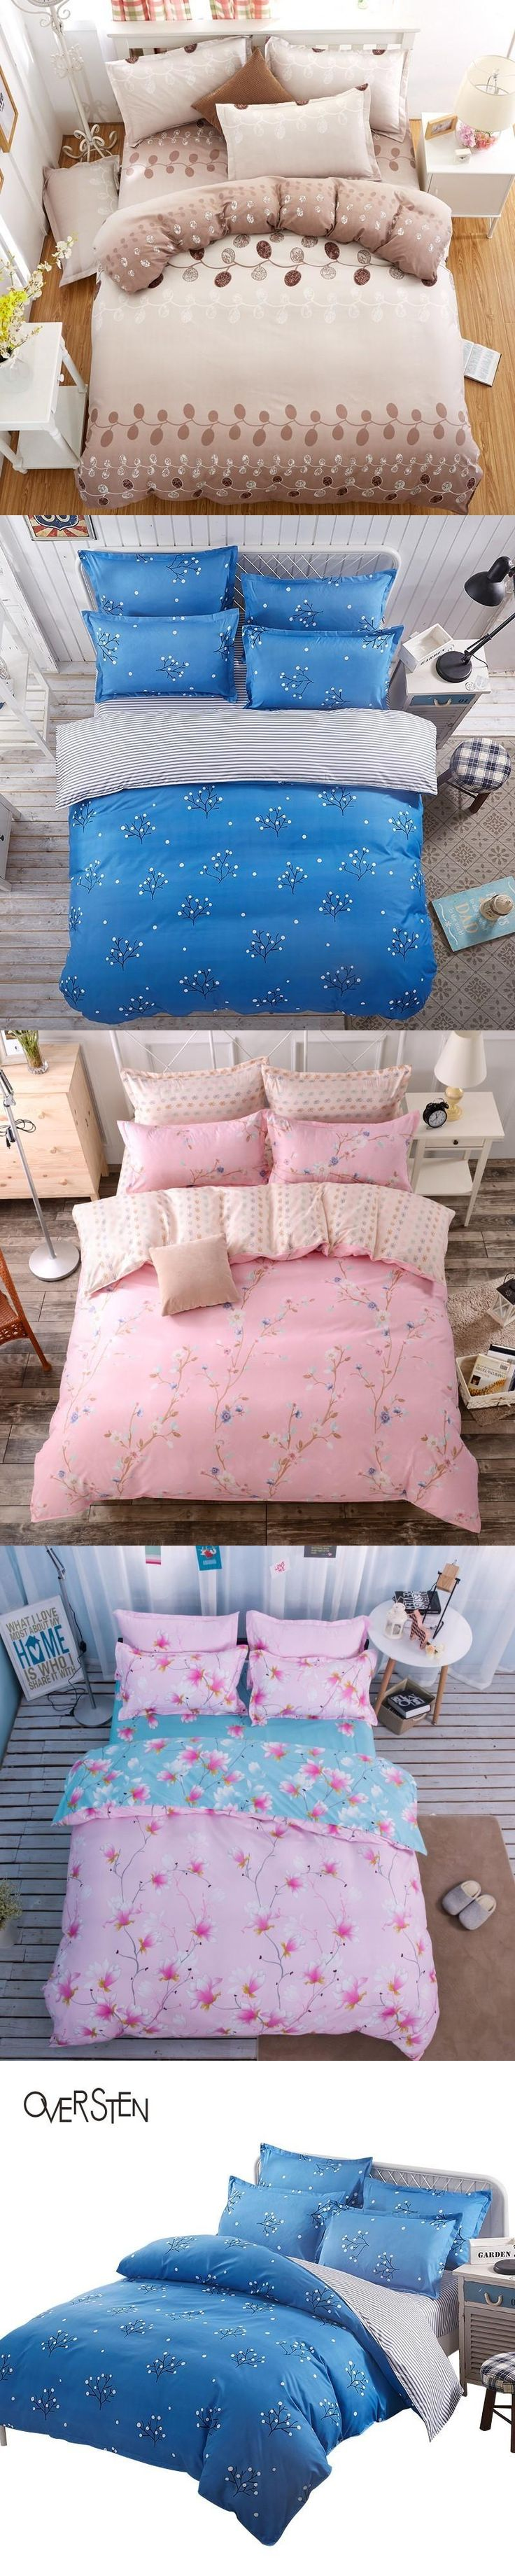 OVERSTEN Pastoral Style Double Single Bedding Set Twin Queen King Size Duvet Cover 2 1 Plant Pattern Bedding Kit Bed Cover